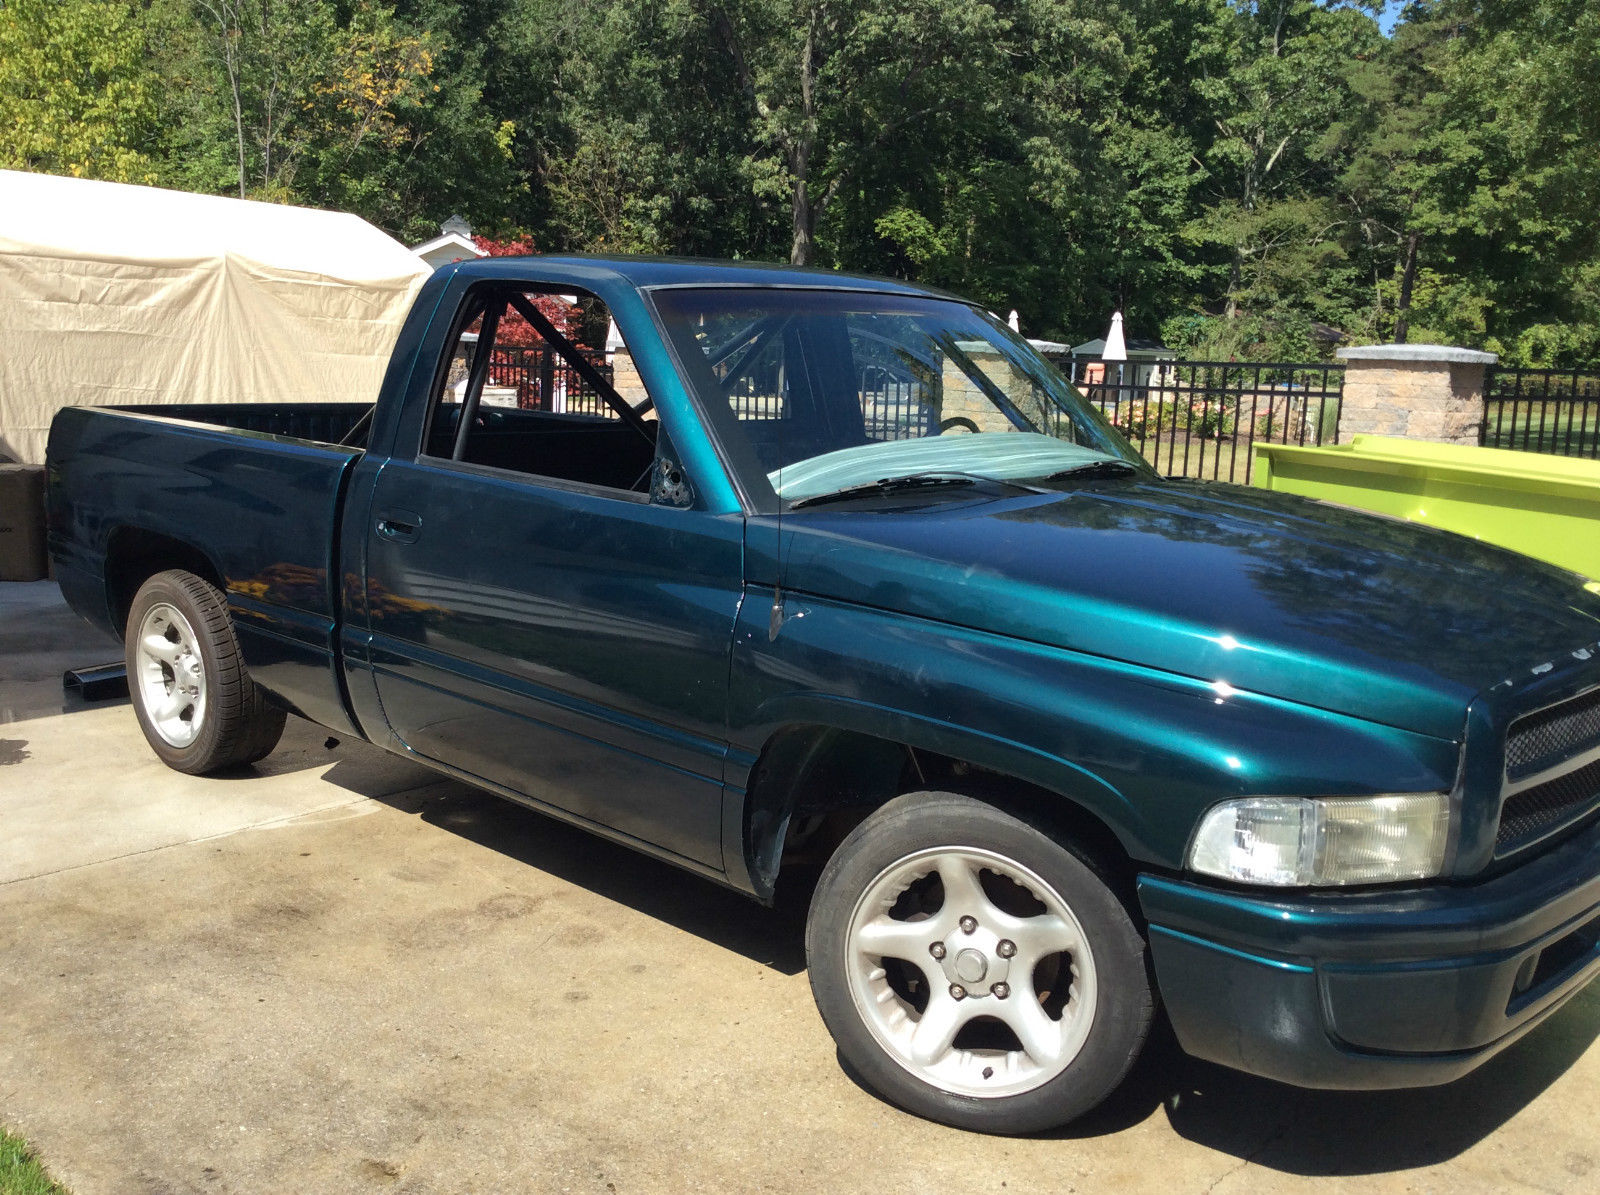 For Sale: Dodge Ram 1500 with a Magnum V10